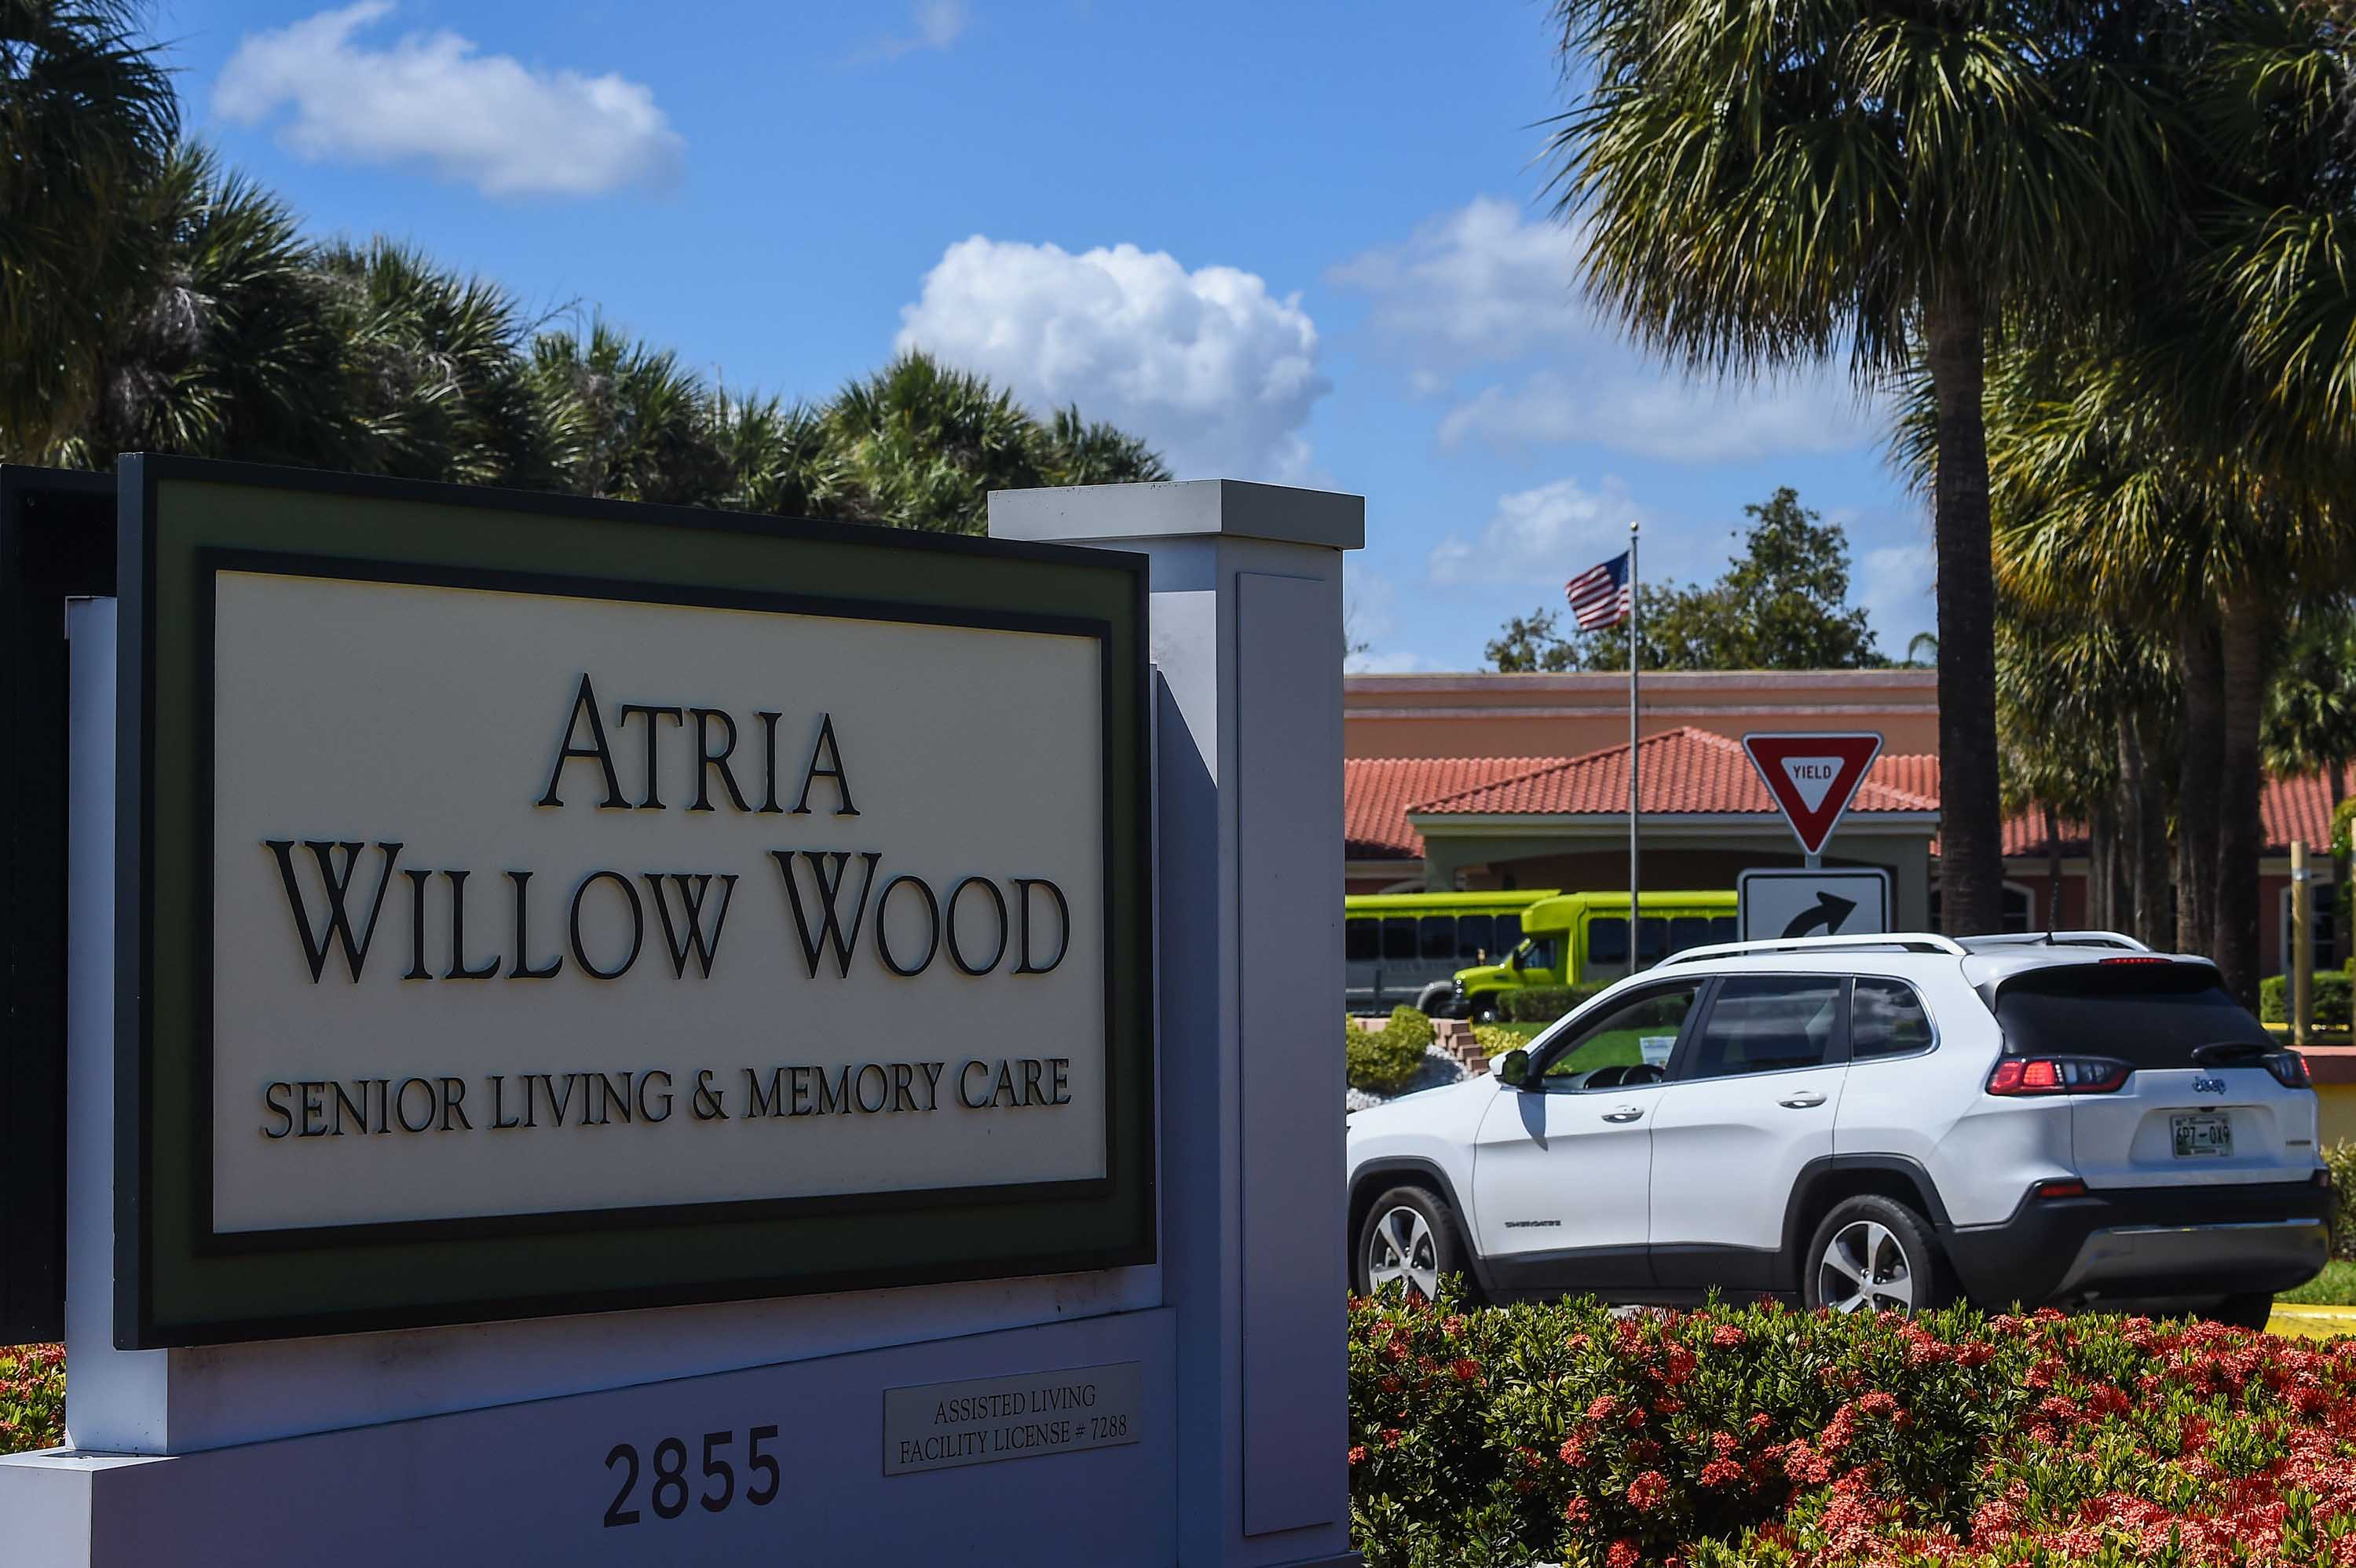 The Atria Senior Living center is pictured on March 21 near Fort Lauderdale, Florida, where there have been reports of coronavirus-related deaths among the center's residents.